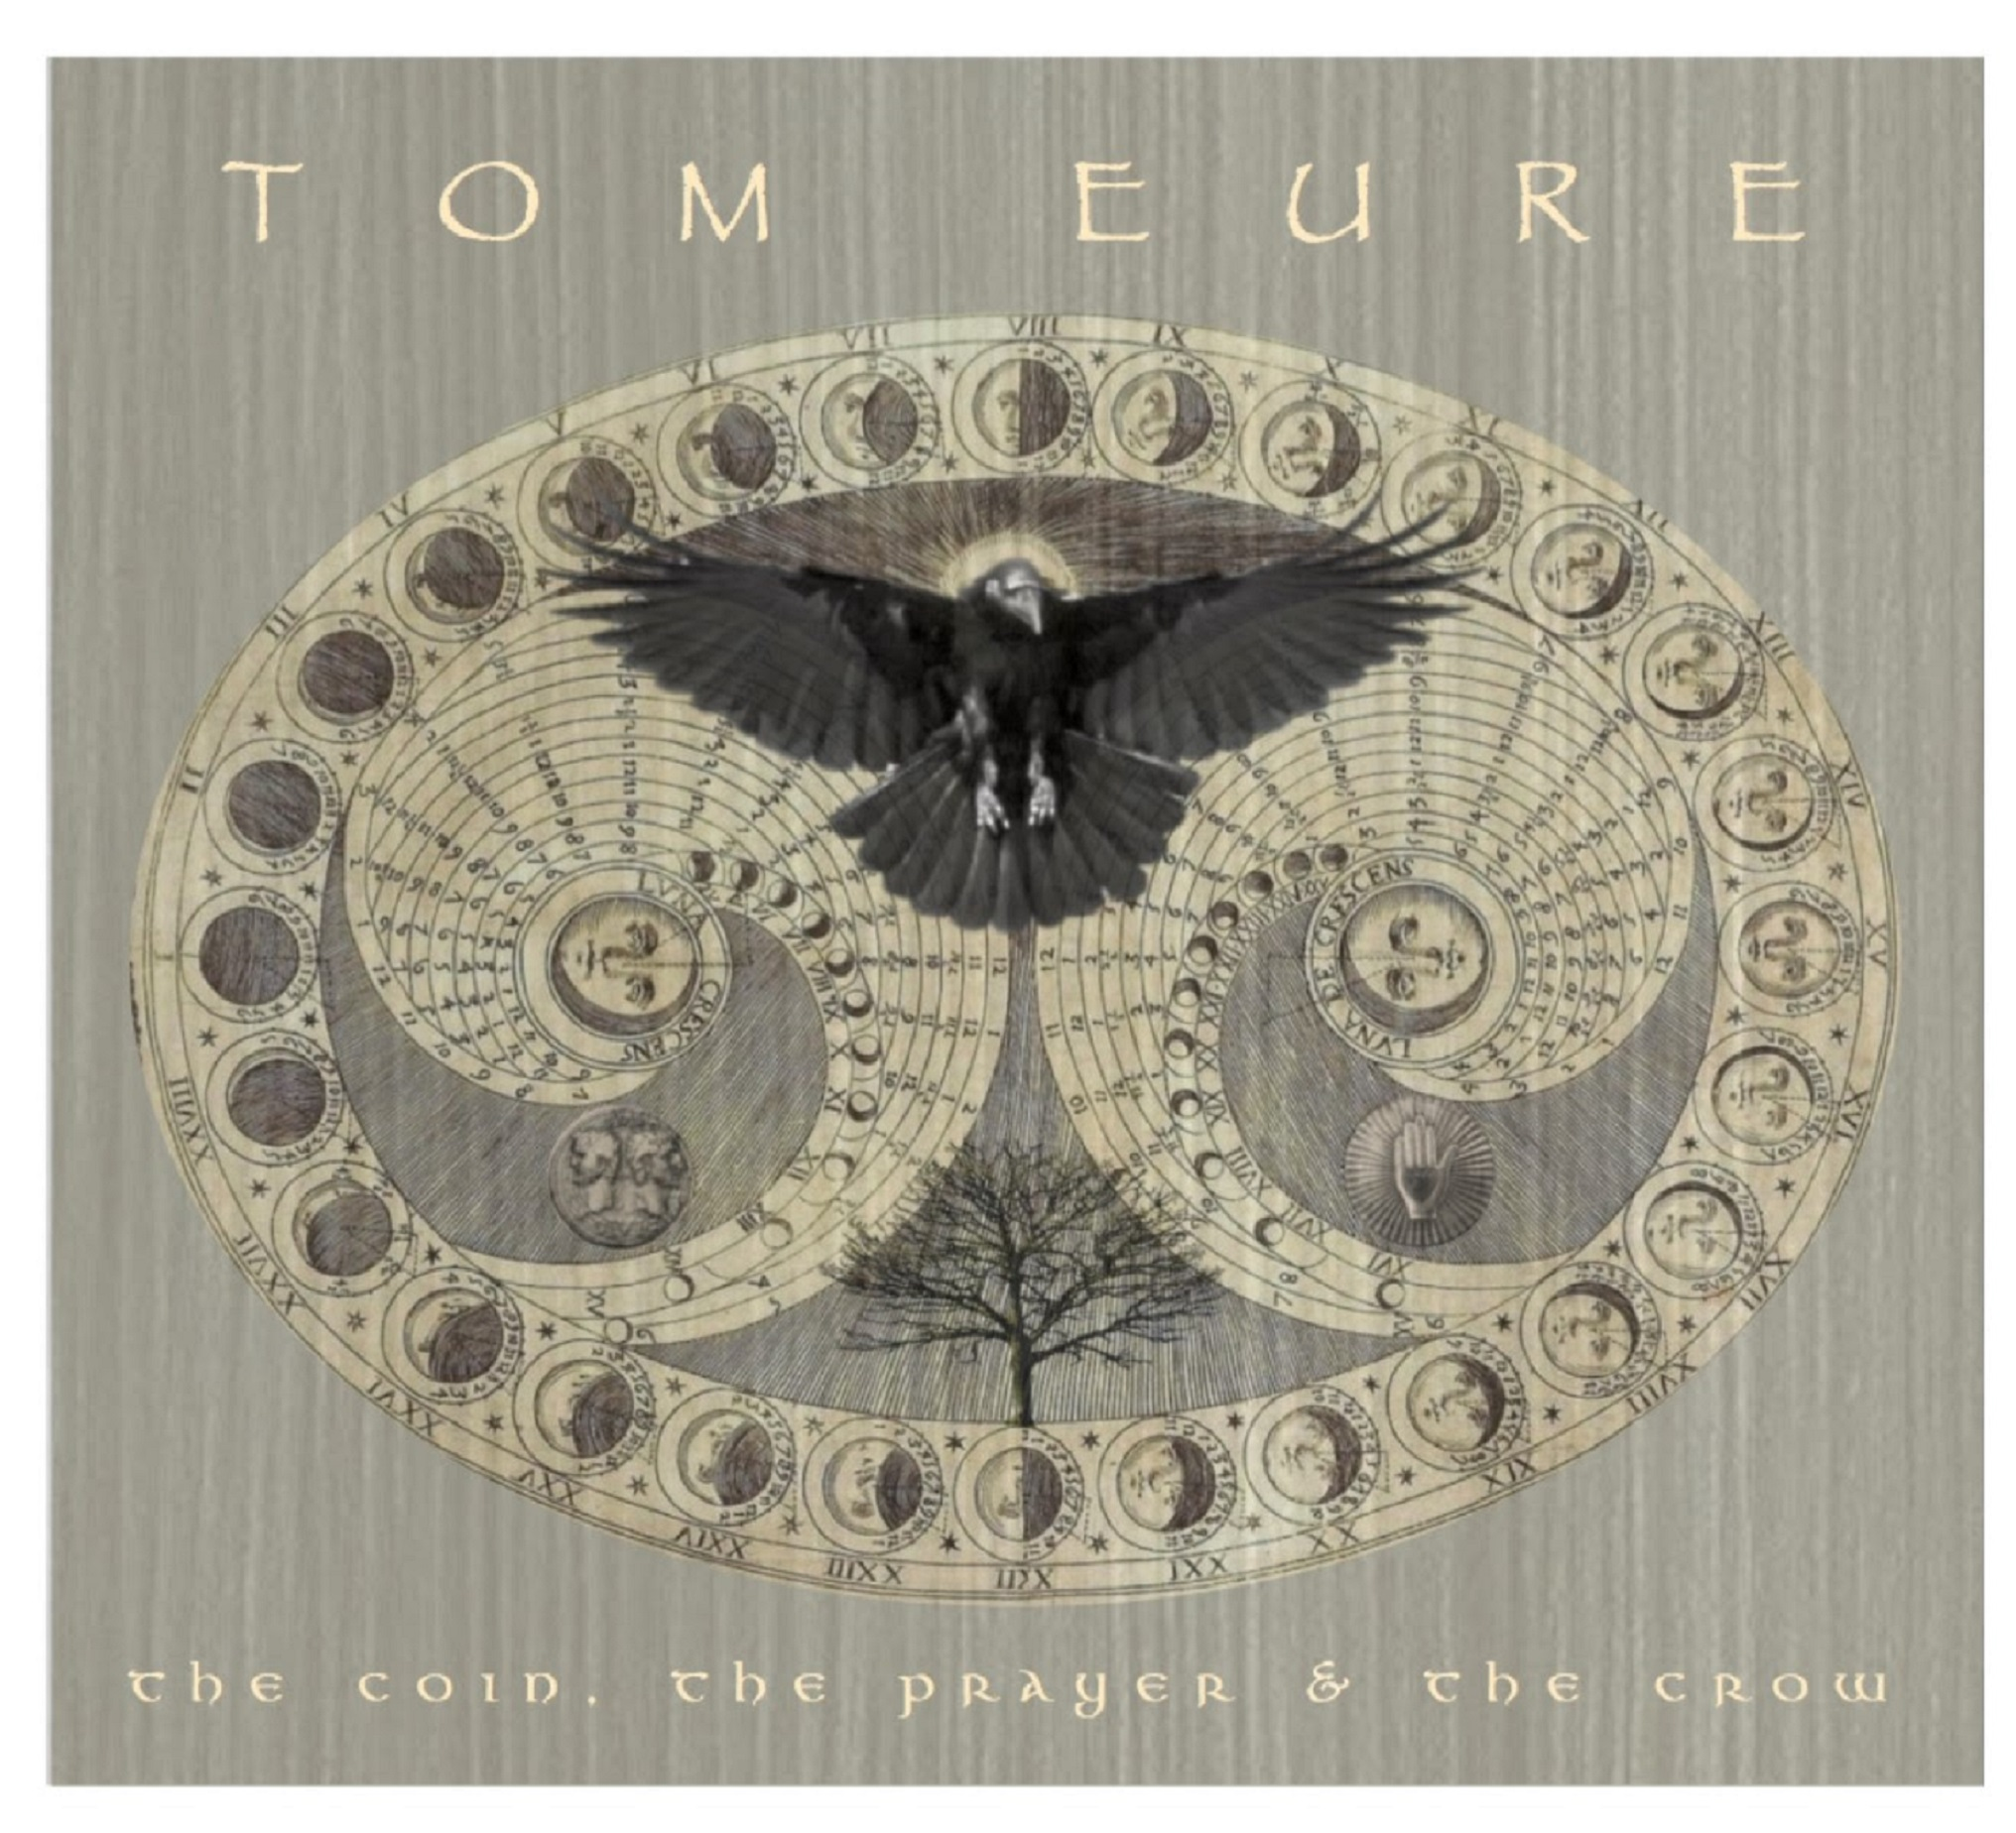 Tom Eure releases The Coin, The Prayer & The Crow